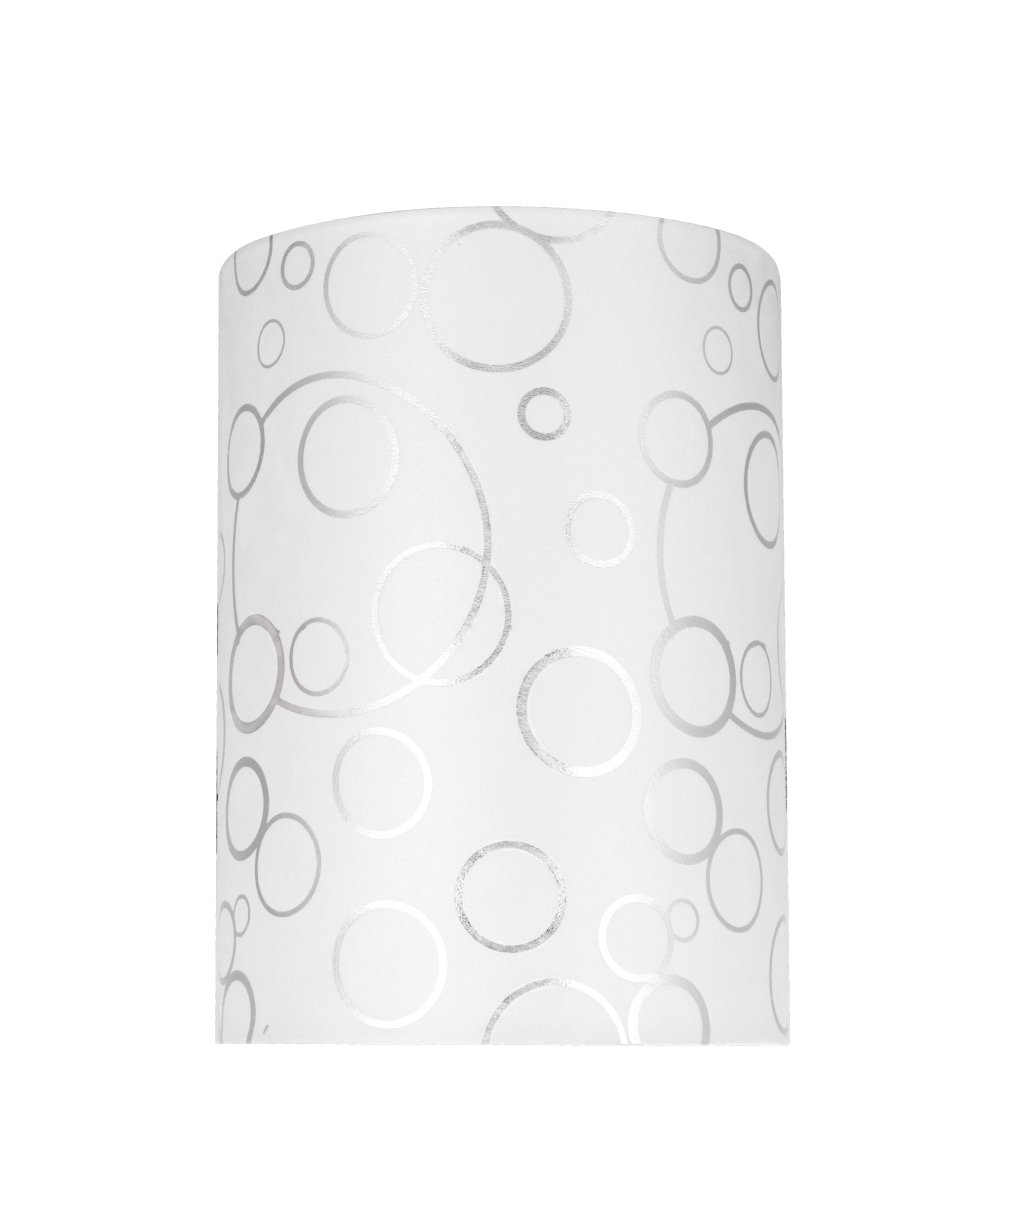 Aspen Creative 31114 Transitional Hardback Drum (Cylinder) Shaped Spider Construction Lamp Shade in White, 8'' wide (8'' x 8'' x 11'')